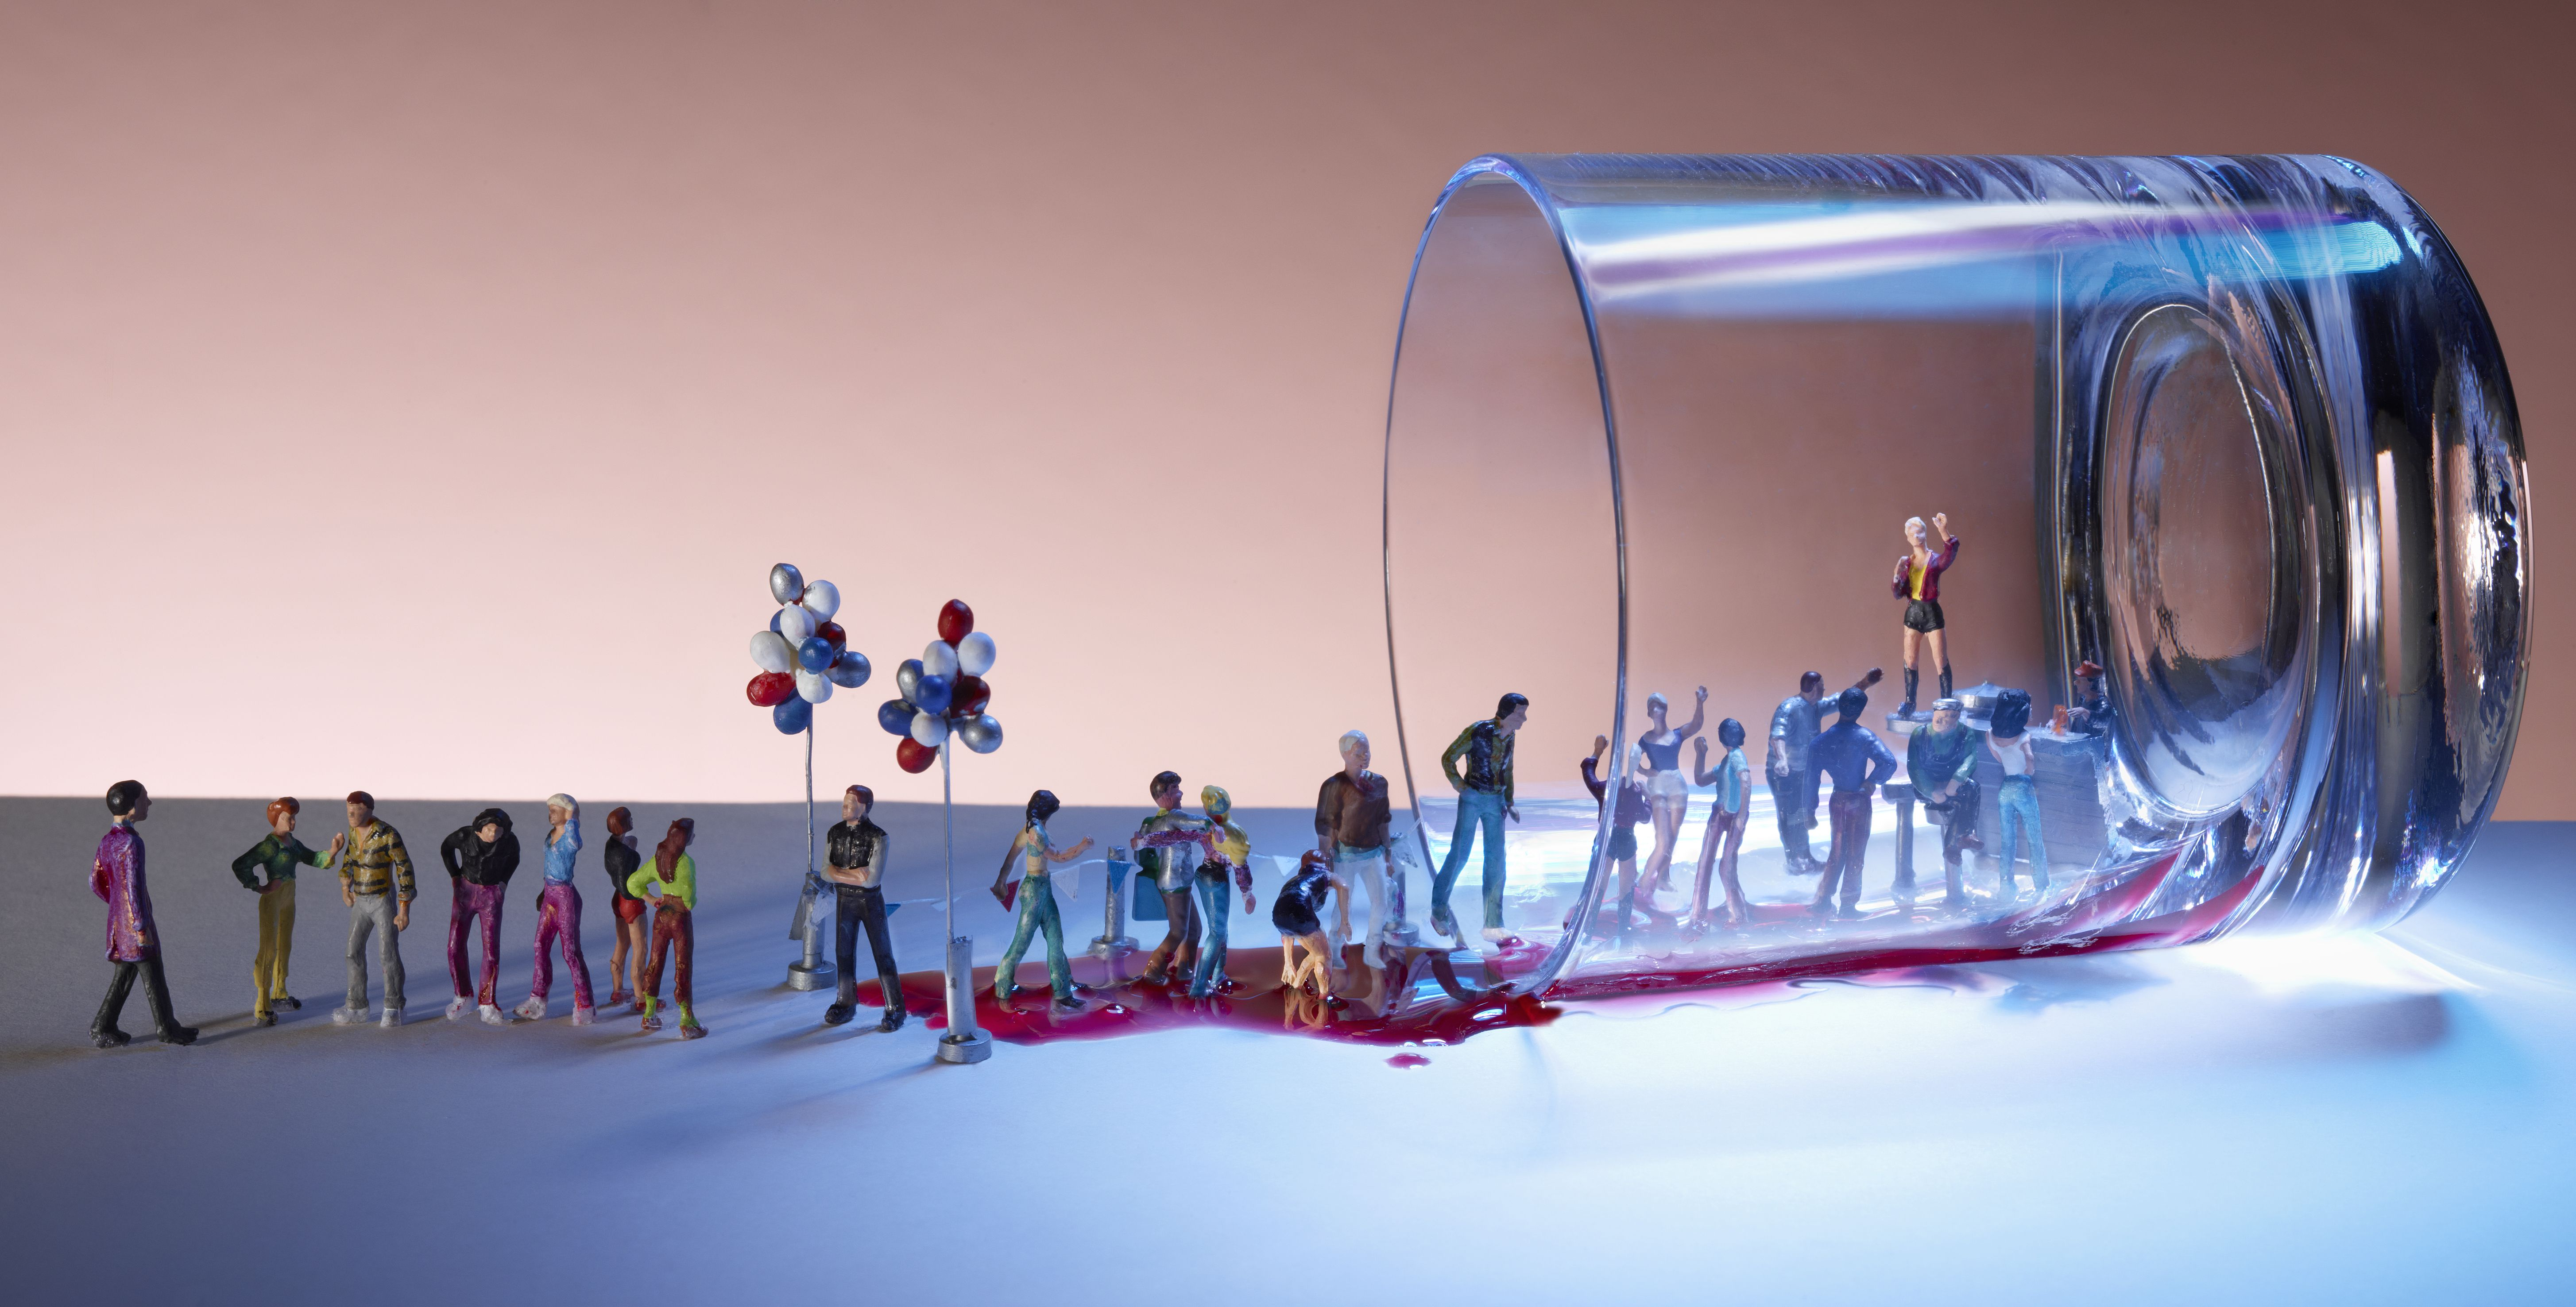 Miniature people queuing at a nightclub happening inside a spilled cocktail glass